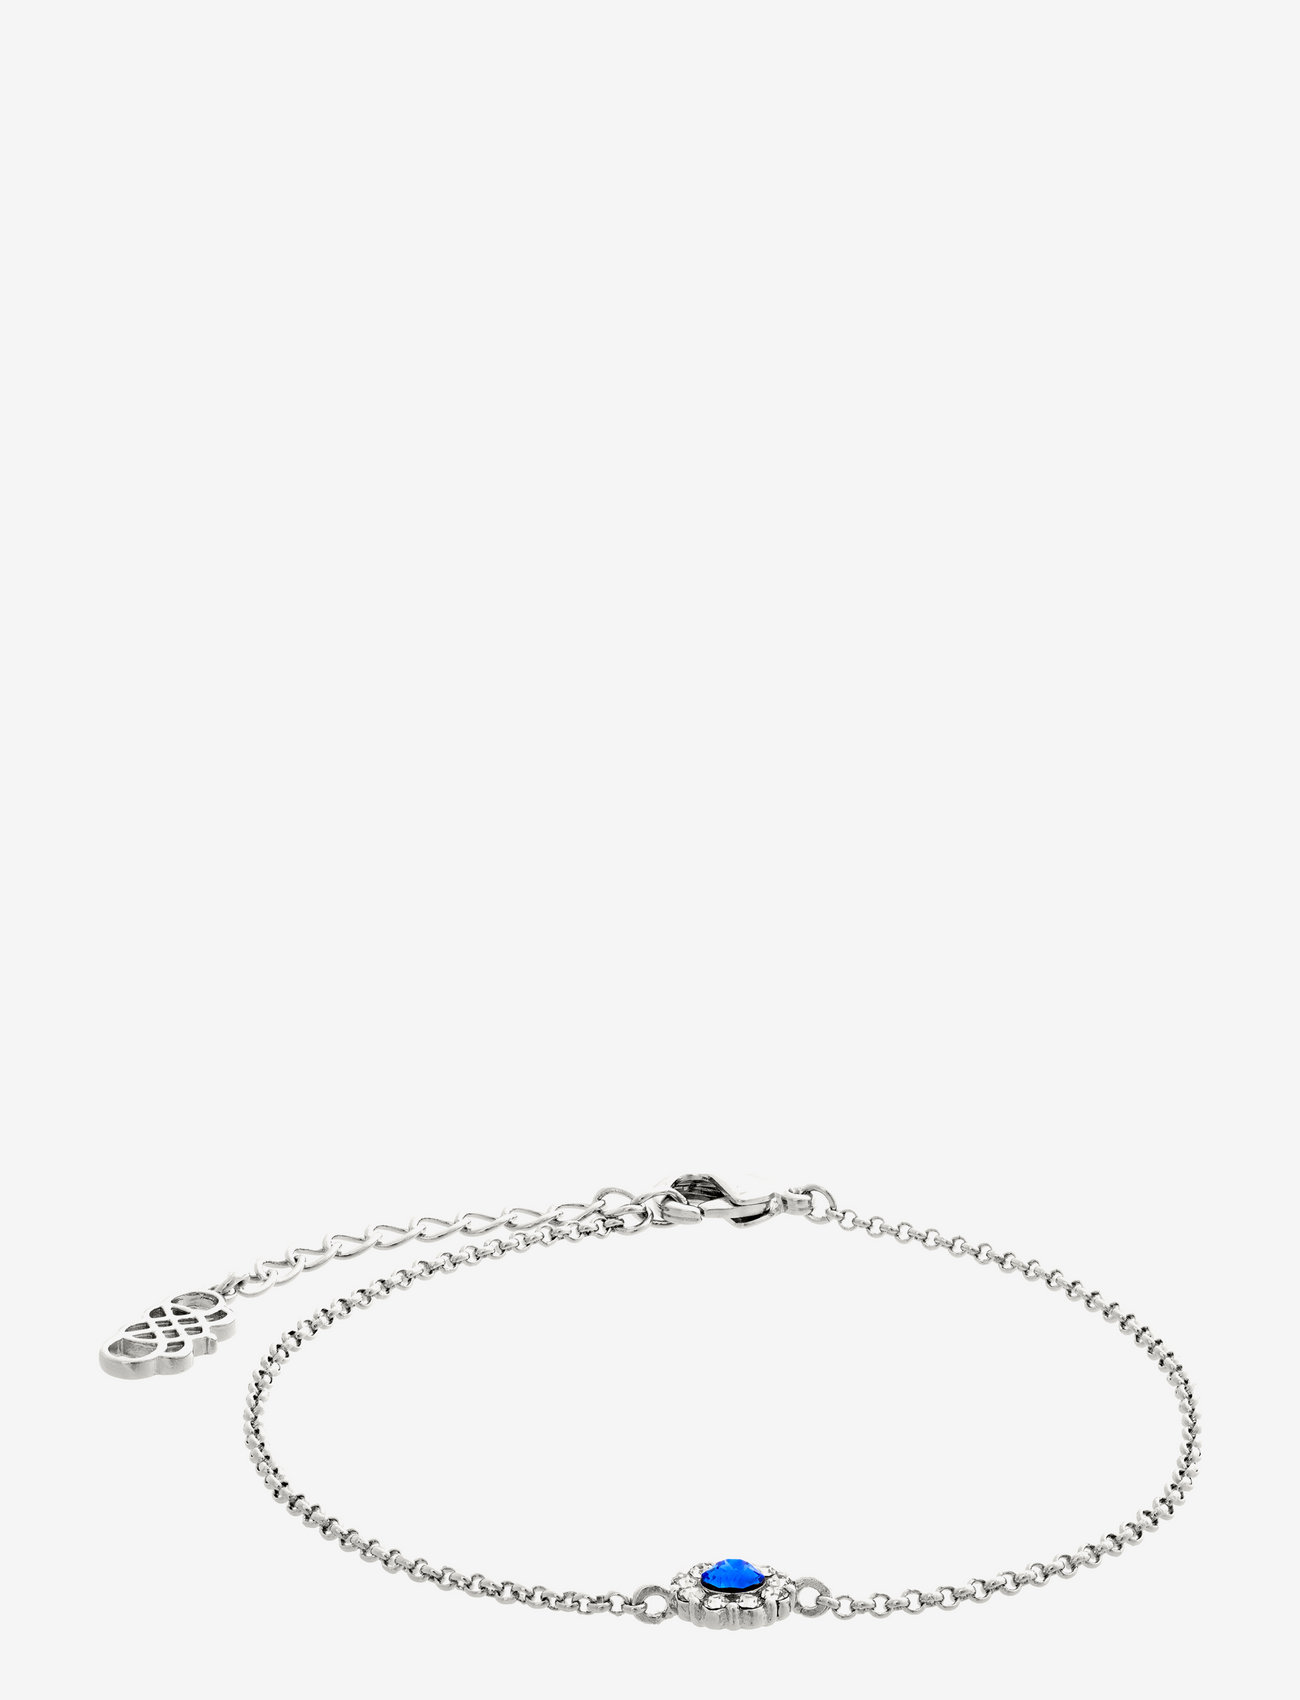 LILY AND ROSE - Petite Miss Sofia bracelet - Sapphire - dainty - sapphire (silver) - 1